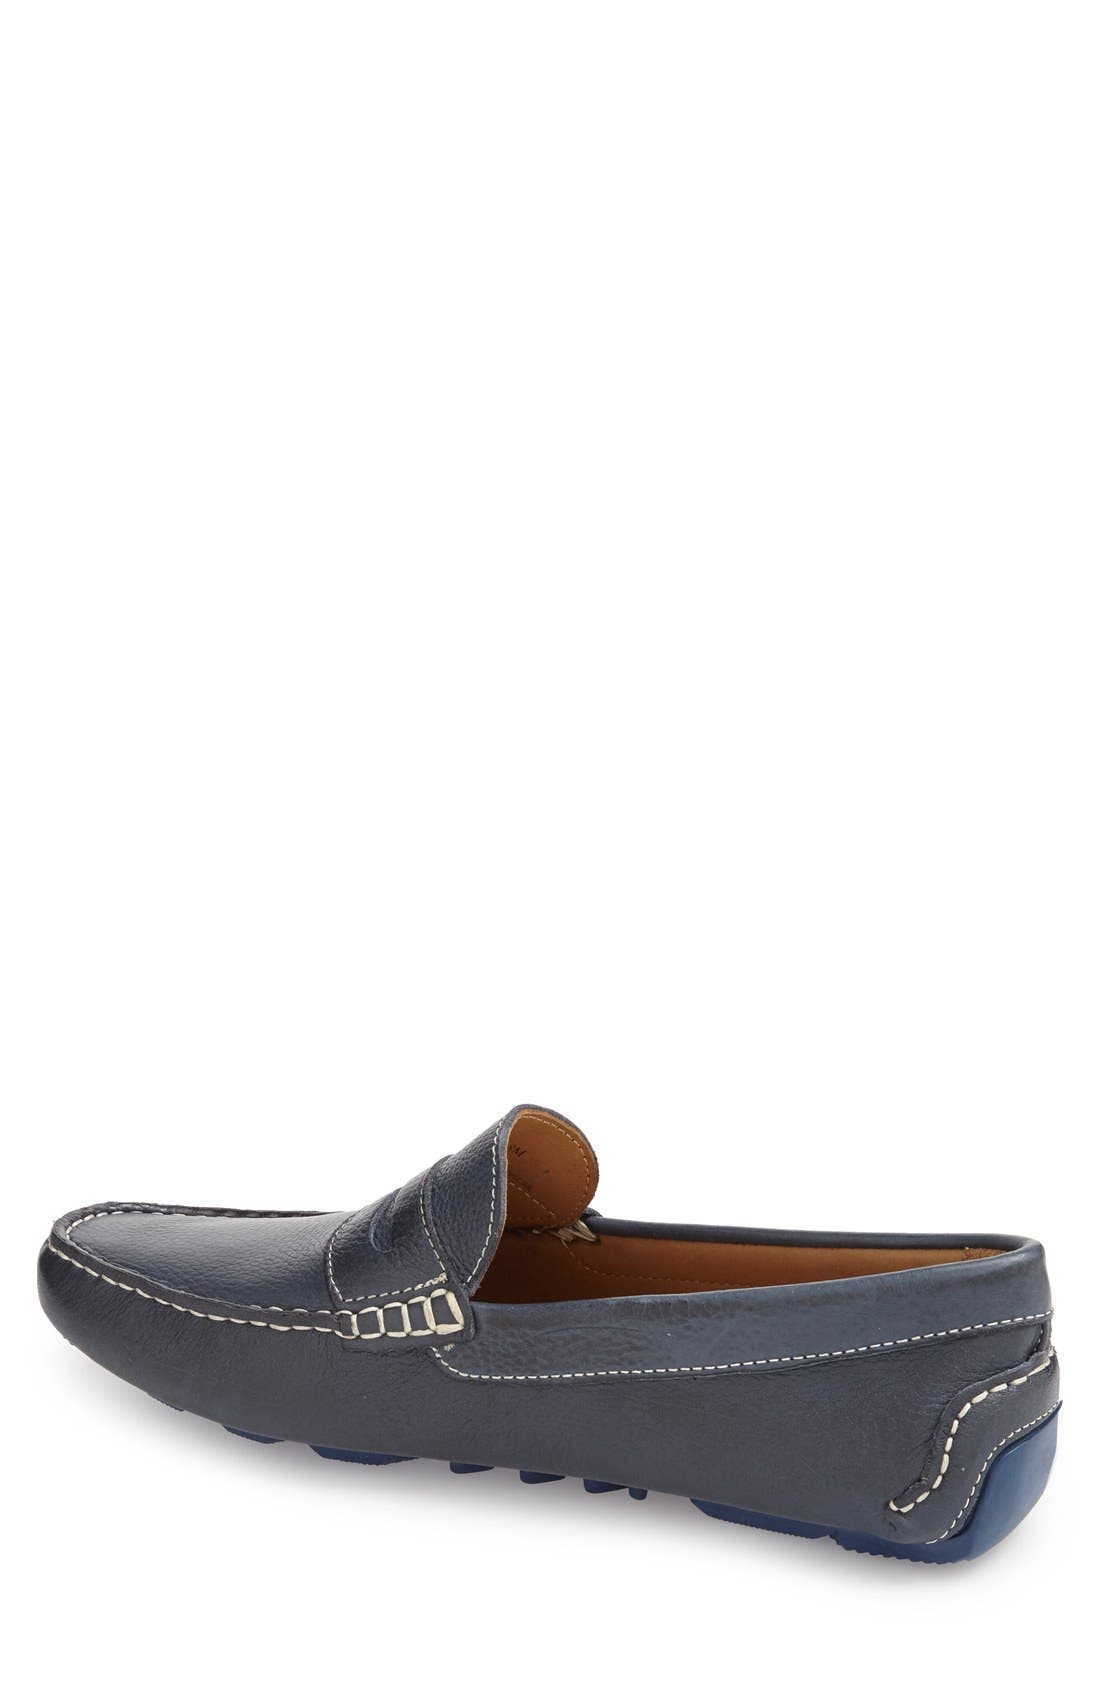 'Bermuda' Penny Loafer,                             Alternate thumbnail 2, color,                             MARINE LEATHER